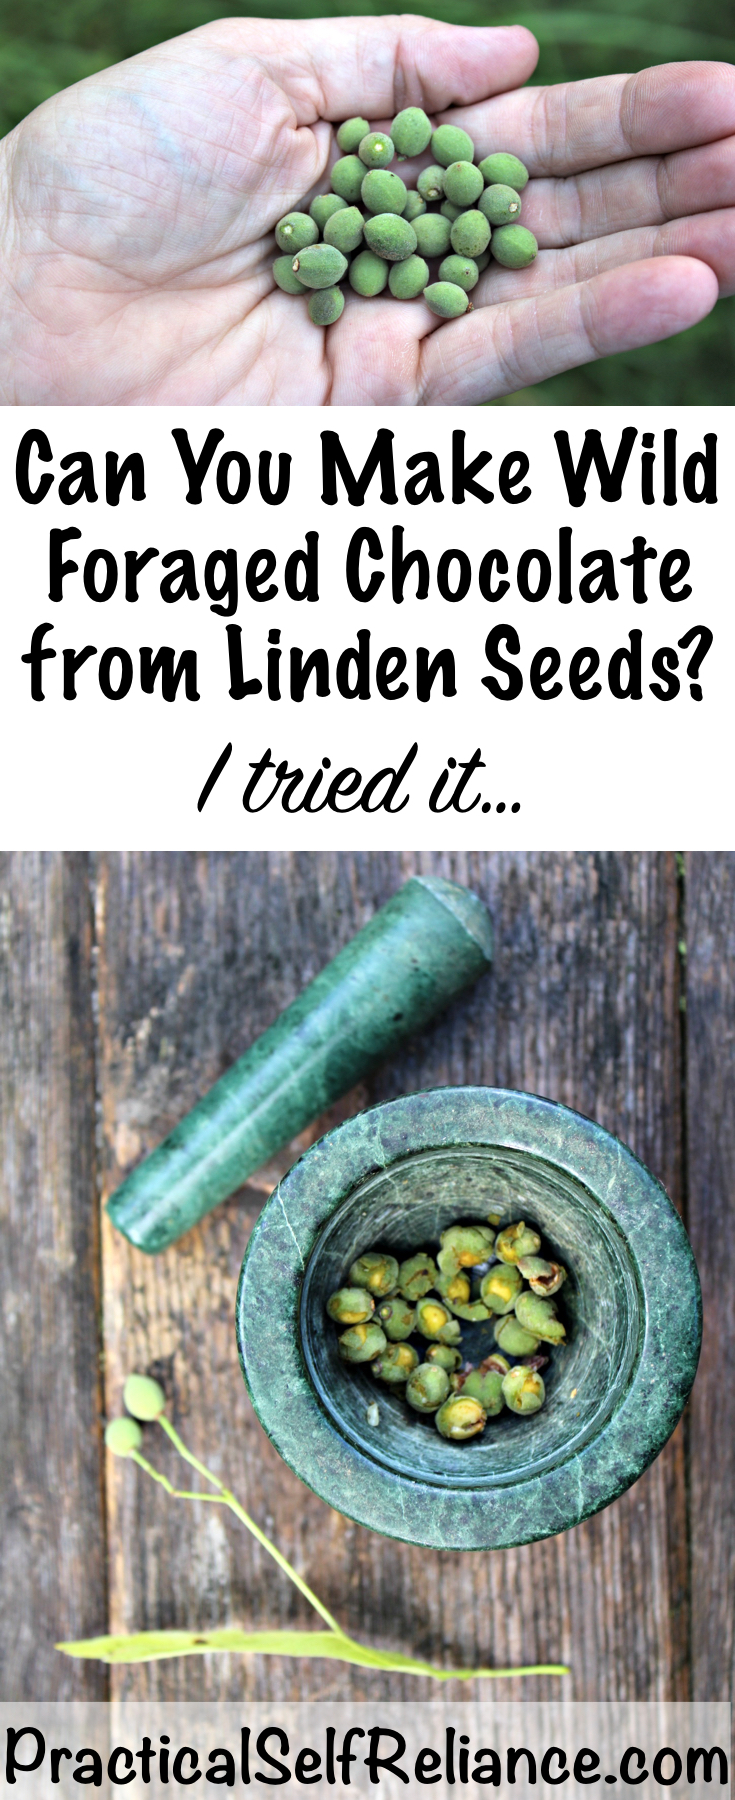 Can you make chocolate from Linden seeds? ~ My Wild Foraged Chocolate Attempt